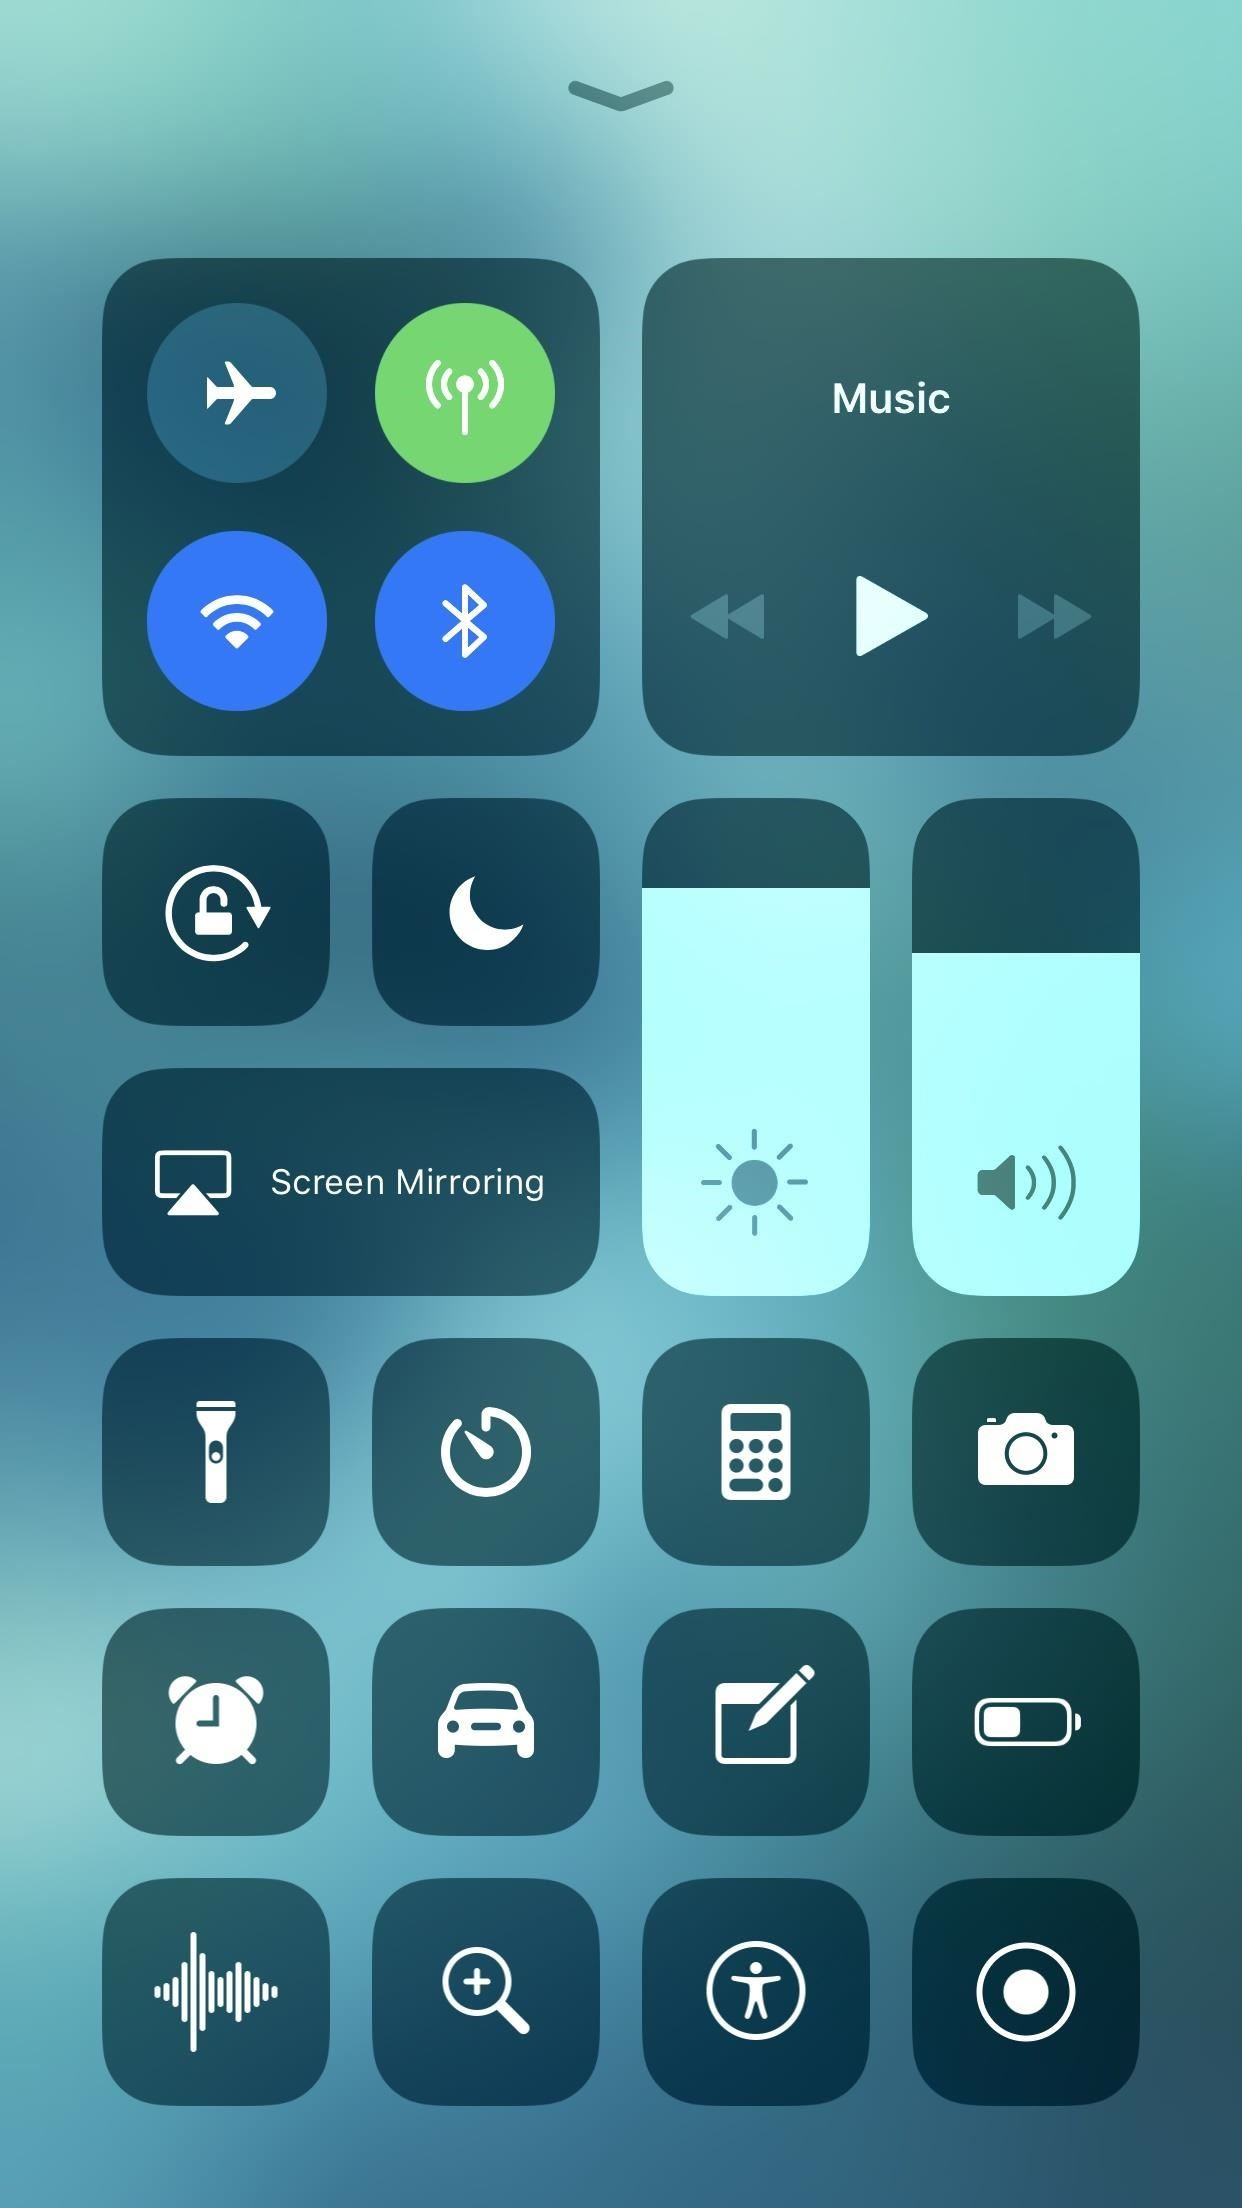 20 Things That Suck About iOS 11 for iPhone